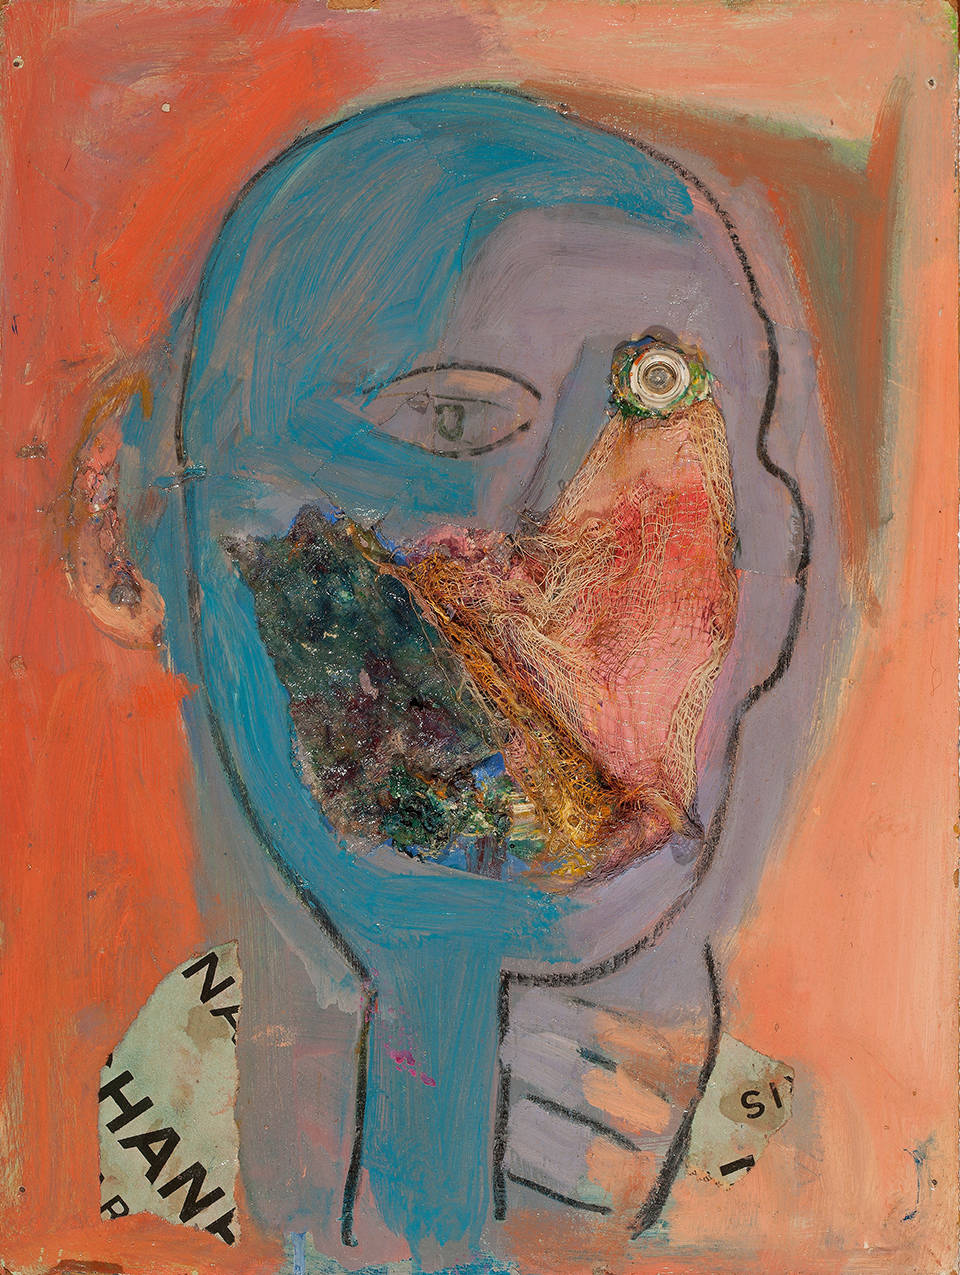 Susan Tepper, Untitled (from the Heads Series), c. 1978-1983. Acrylic, Conté crayon and collage on Masonite 16 x 12 inches (40.6 x 30.5 cm)